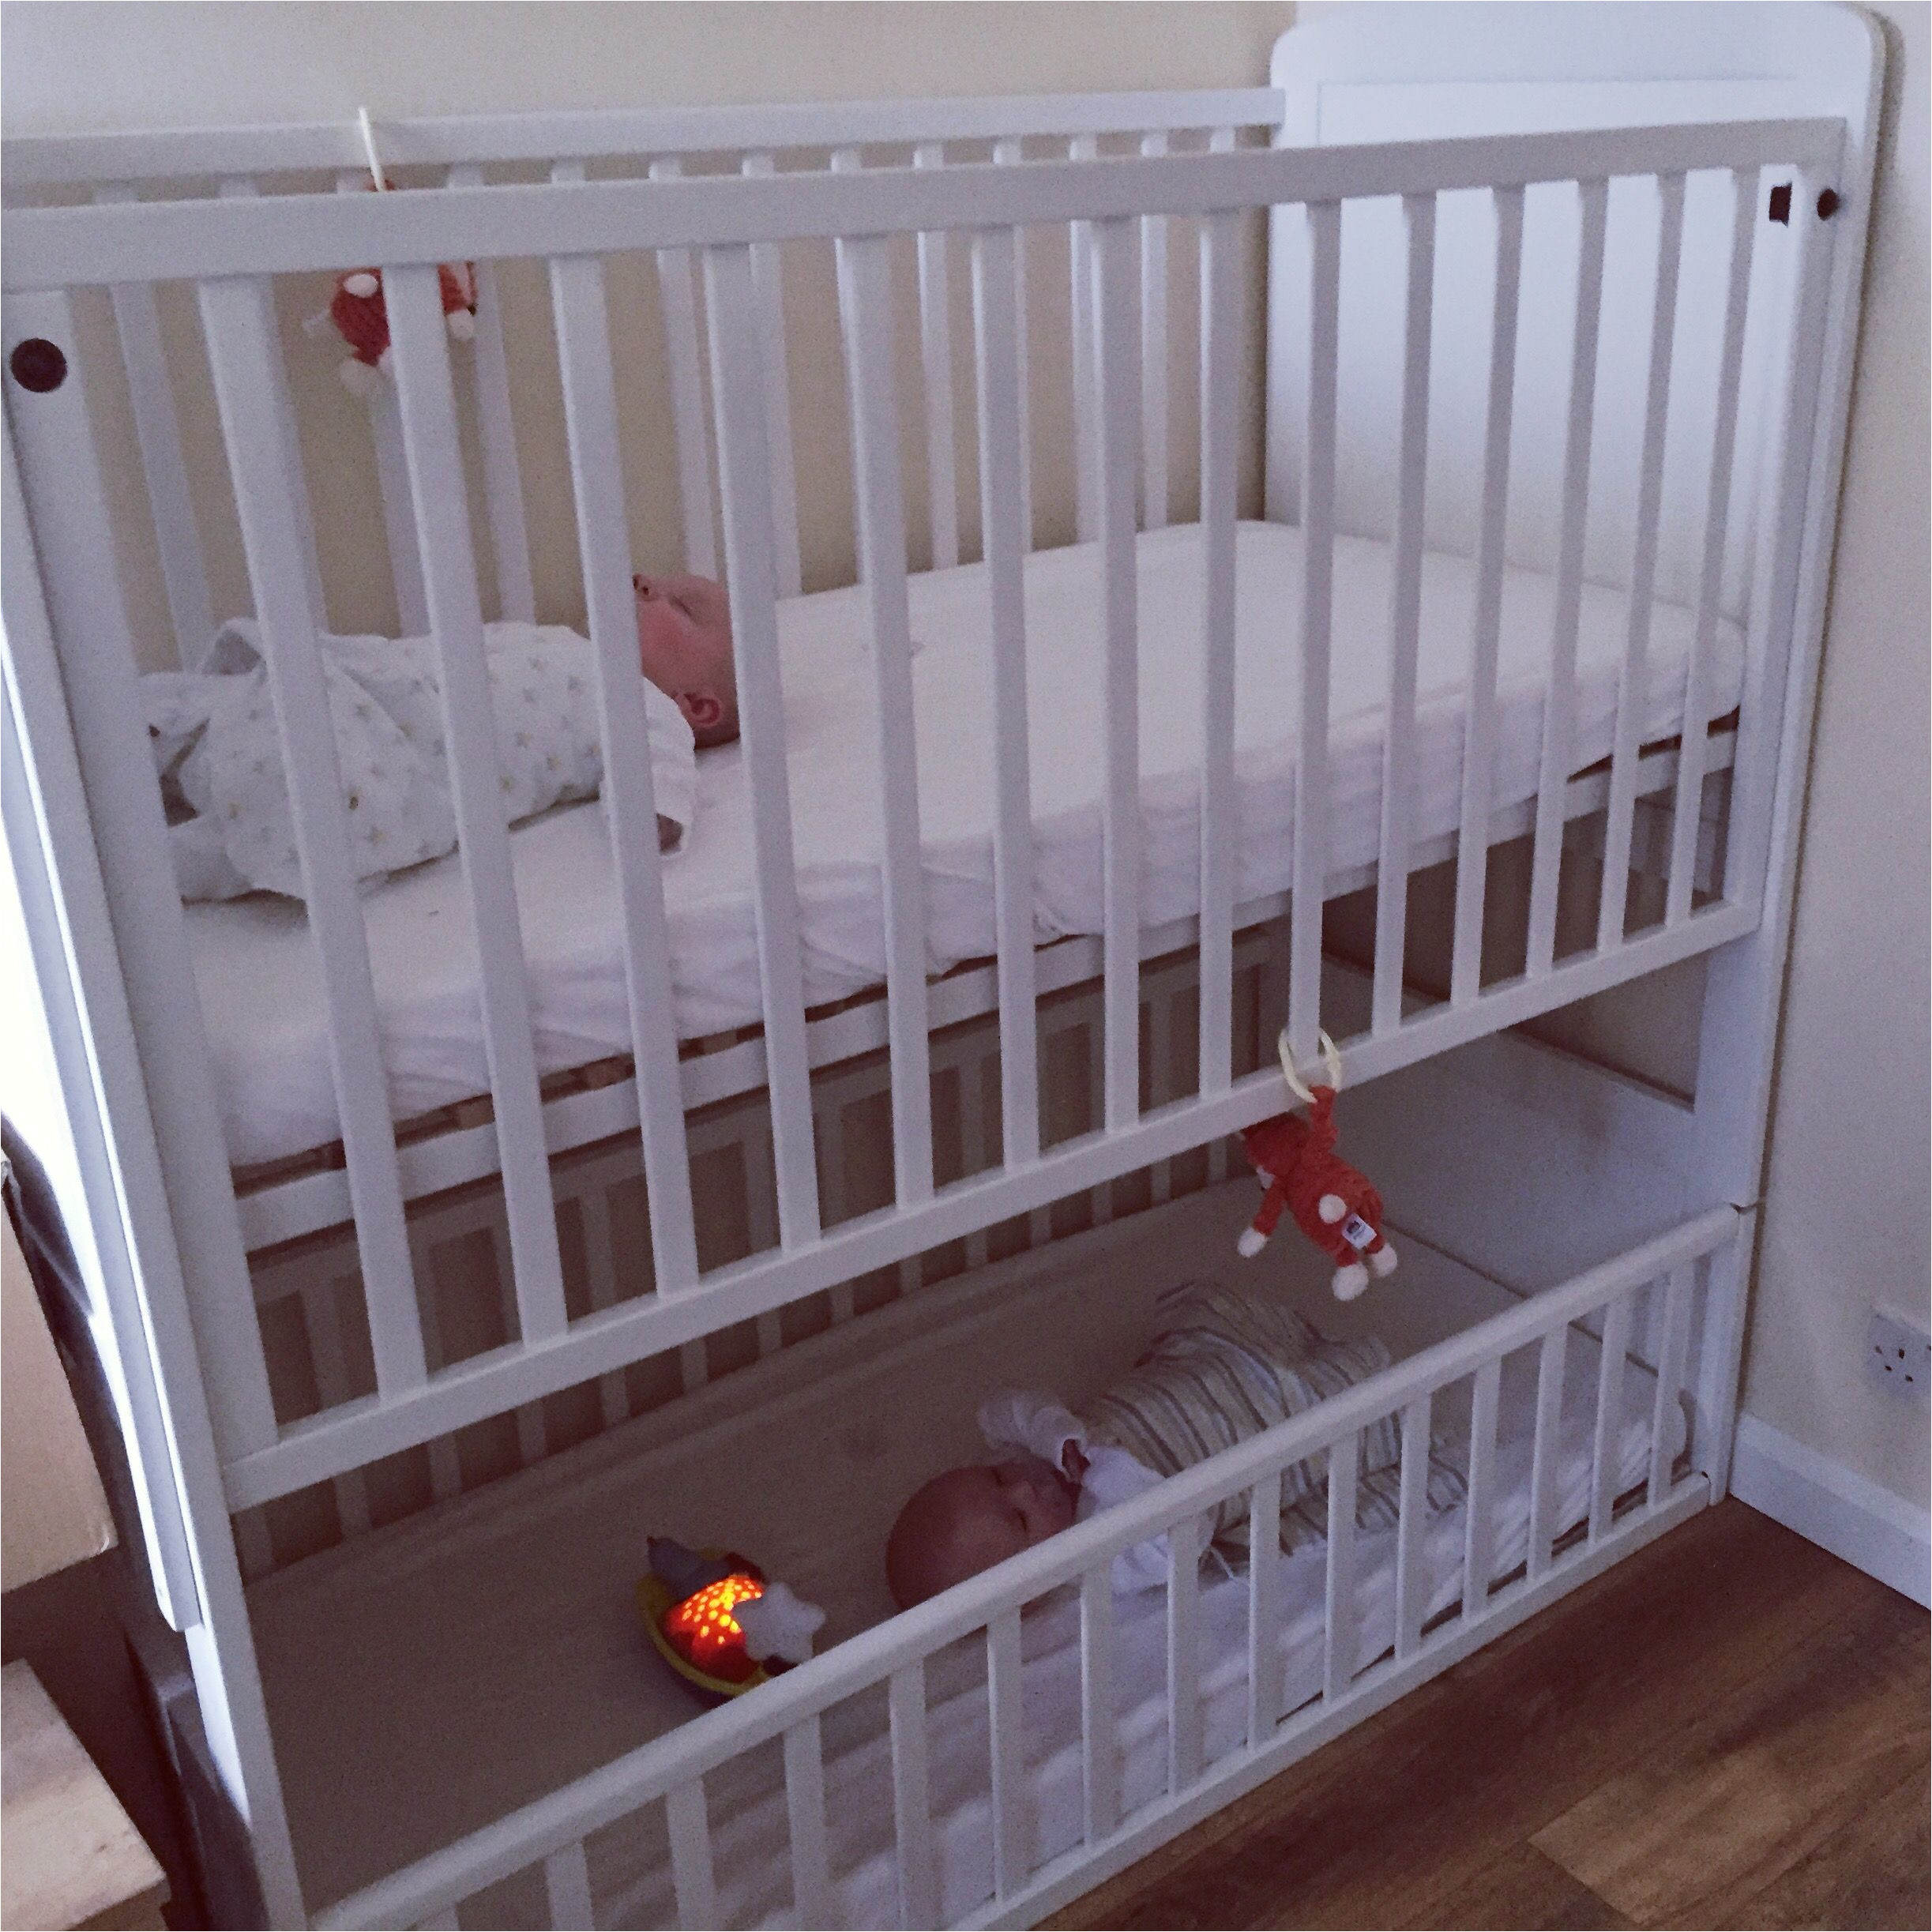 a bunk cot for twins or siblings close in age perfect if you are looking for space saving equipment